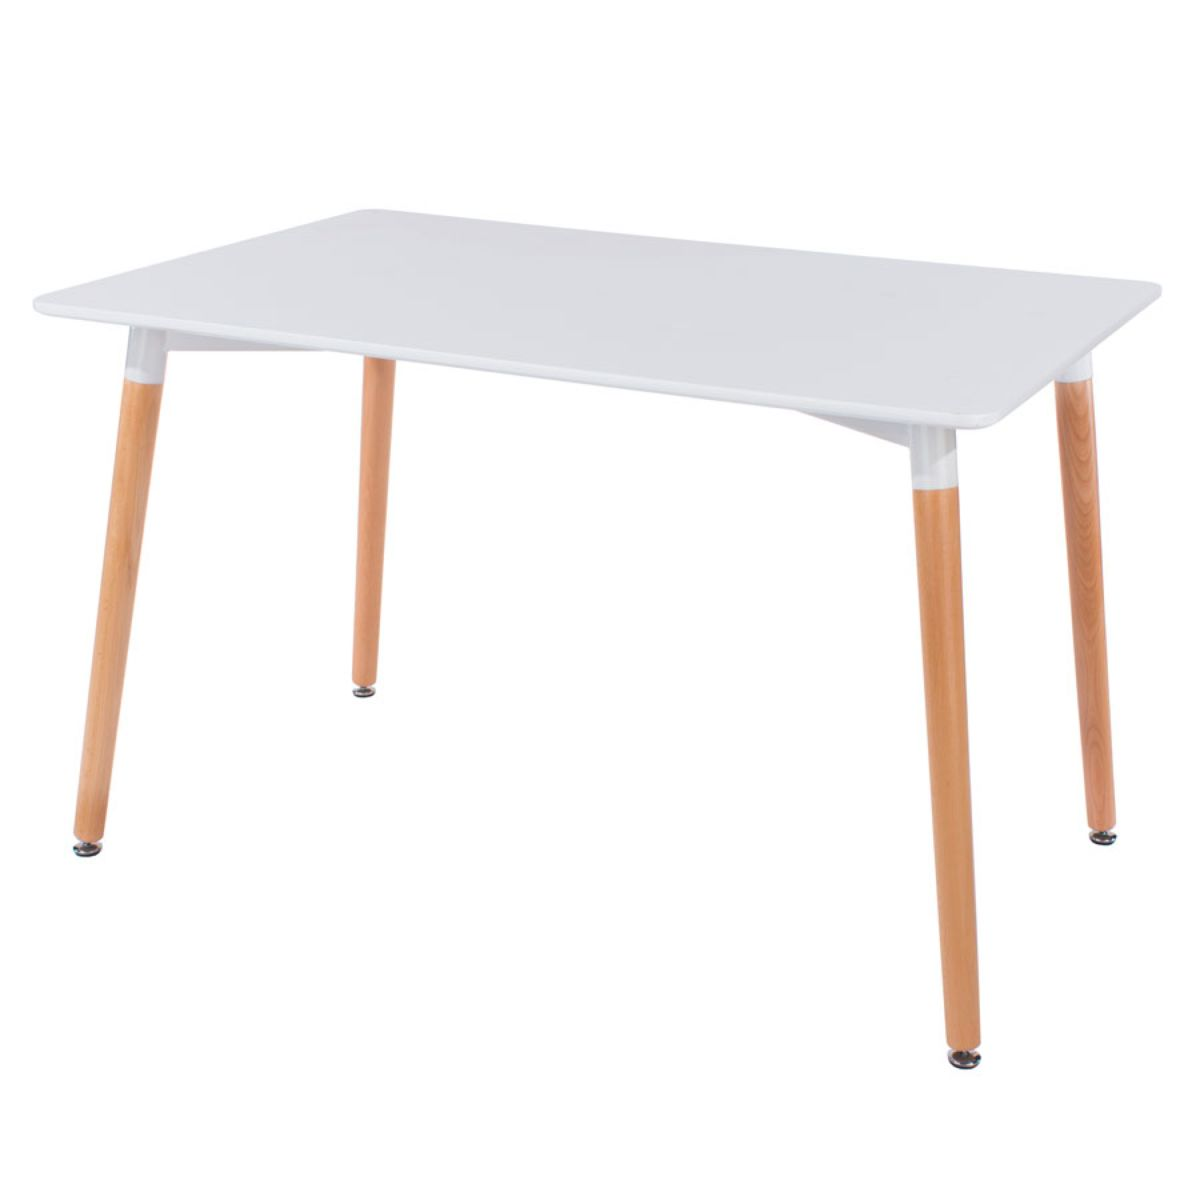 Roloku Rectangular Dining Table with Wooden Legs - White